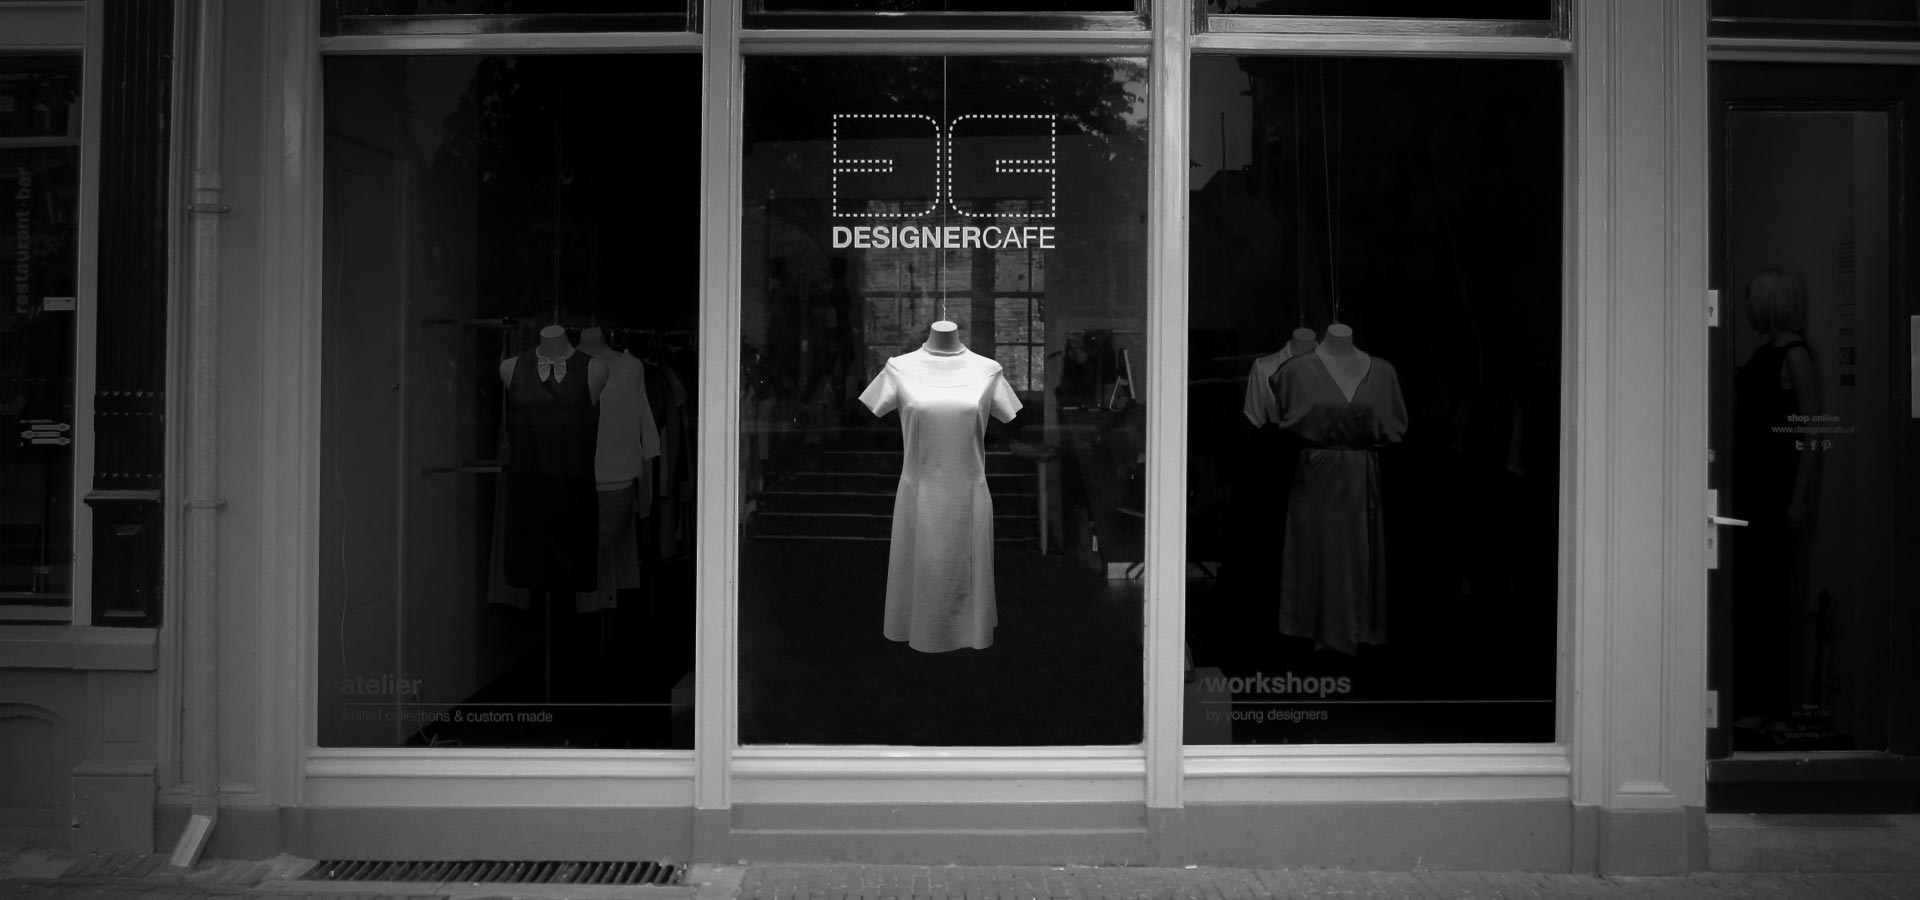 A black and white image of the interactive dress, designed by Mr.Beam studio for the Designercafe